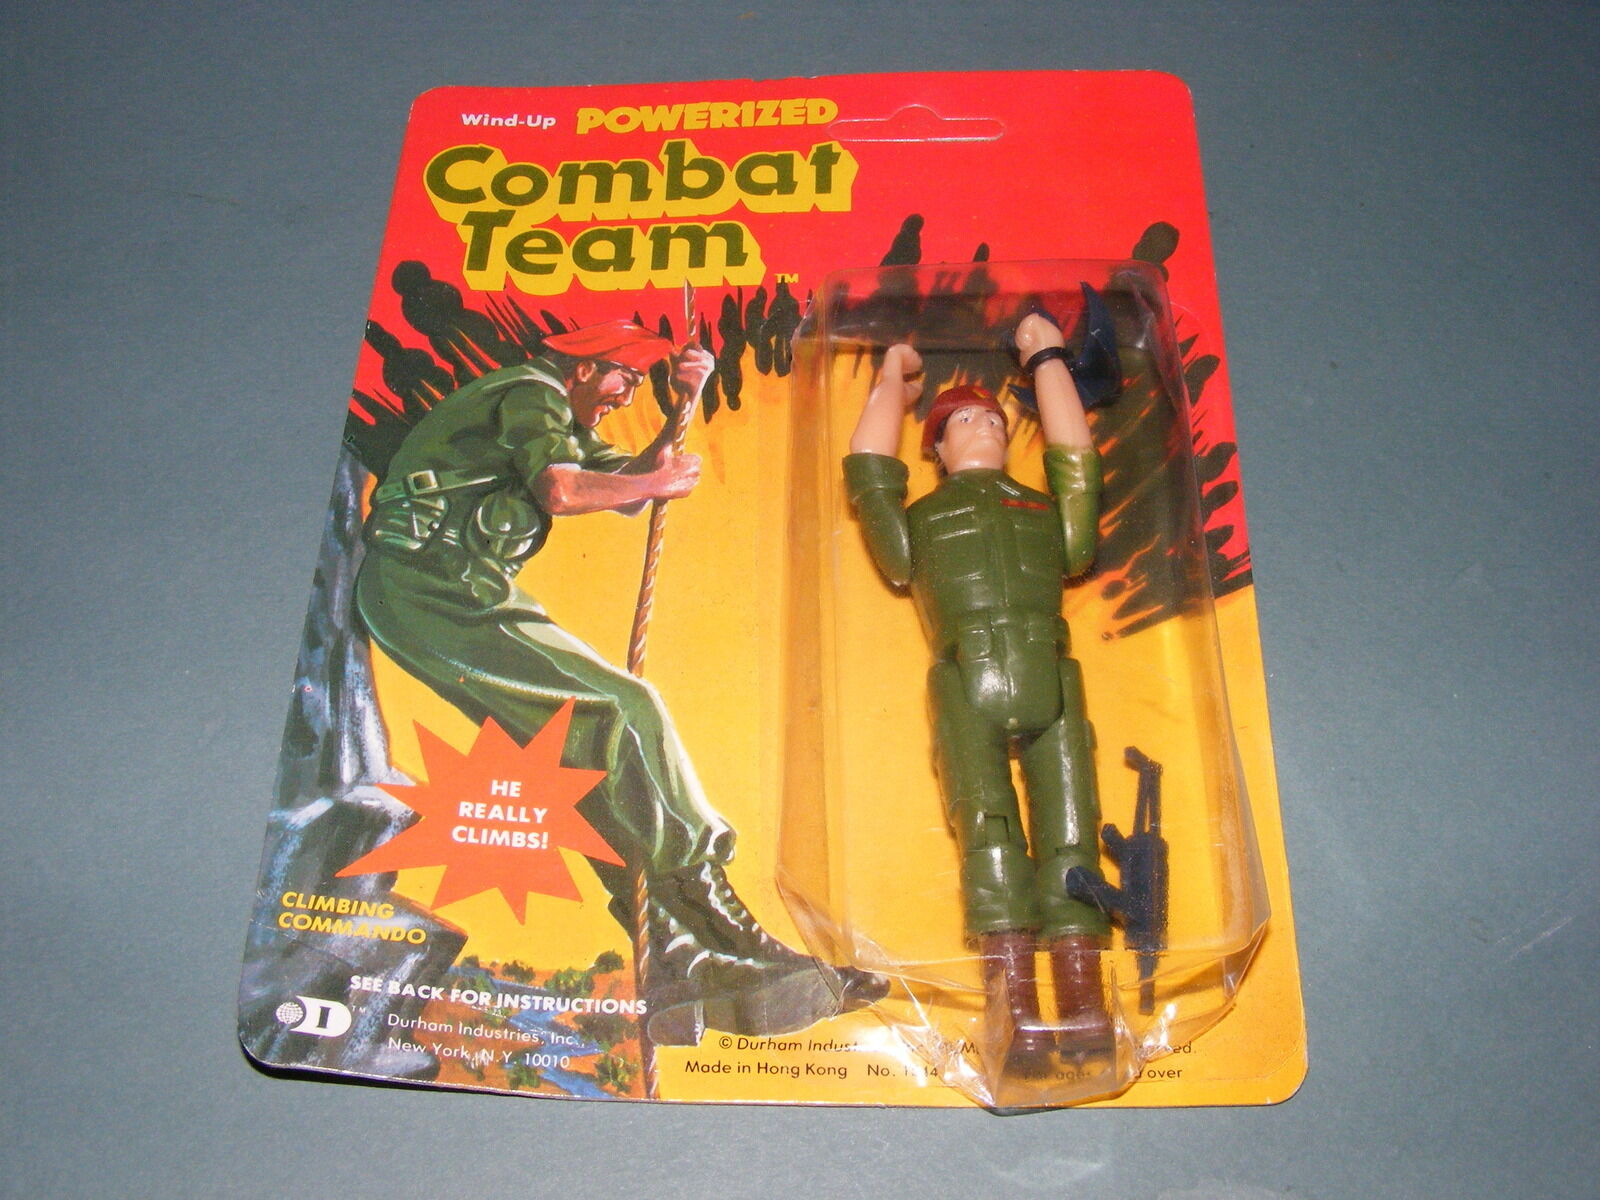 Vintage Wind Up Powerized Combat Team Action Figure NEW